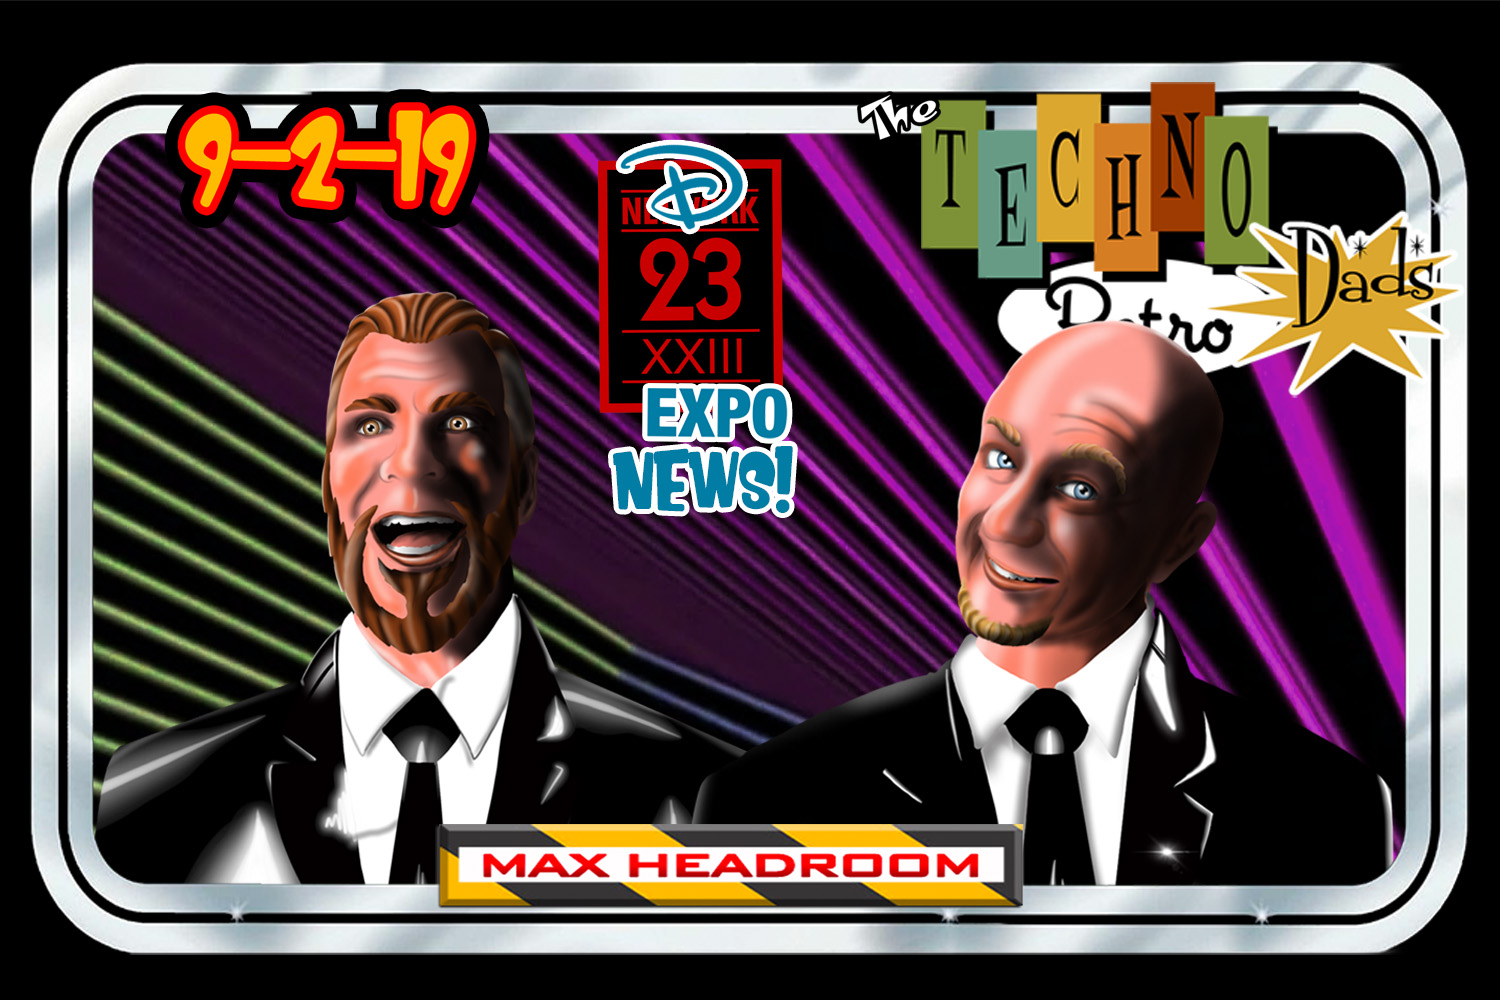 shazbazzar and JediShua are Max Headroom